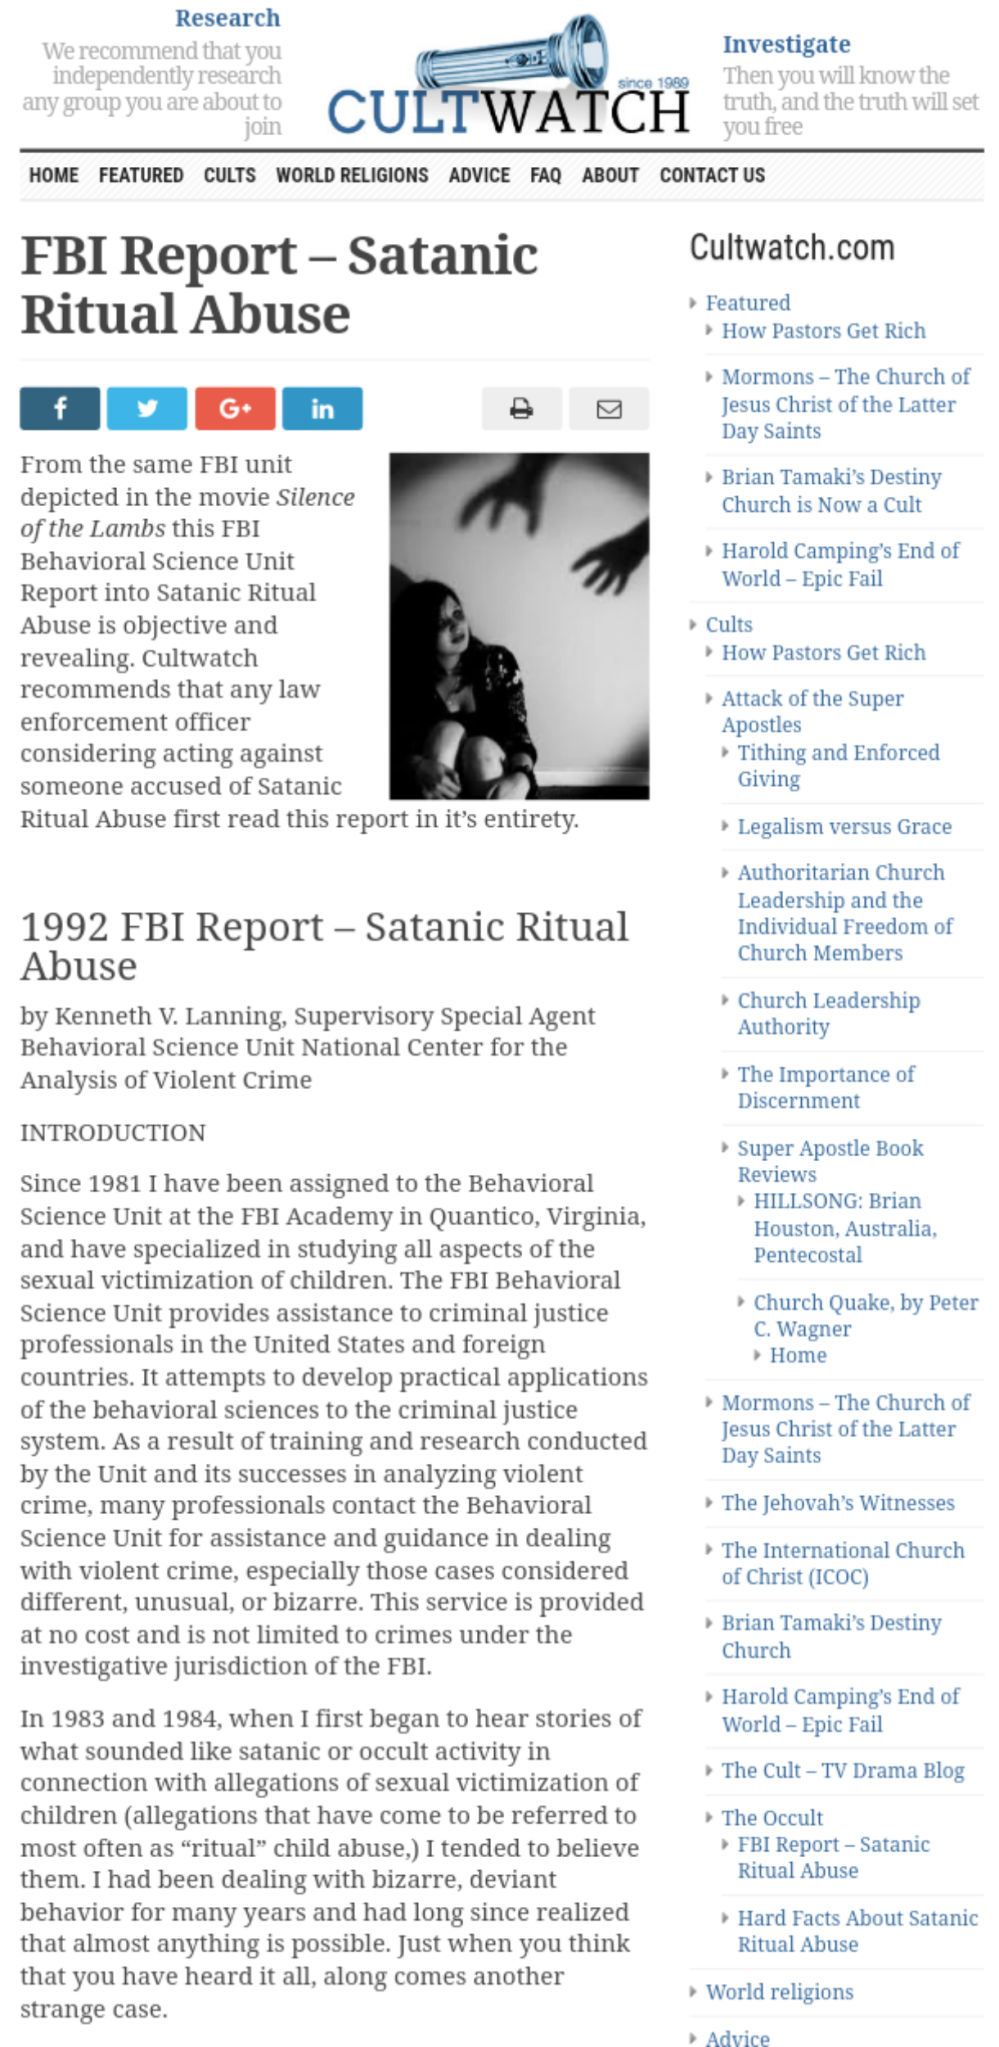 INTRODUCTION TO PEDOGATE | SAVE THE CHILDREN!